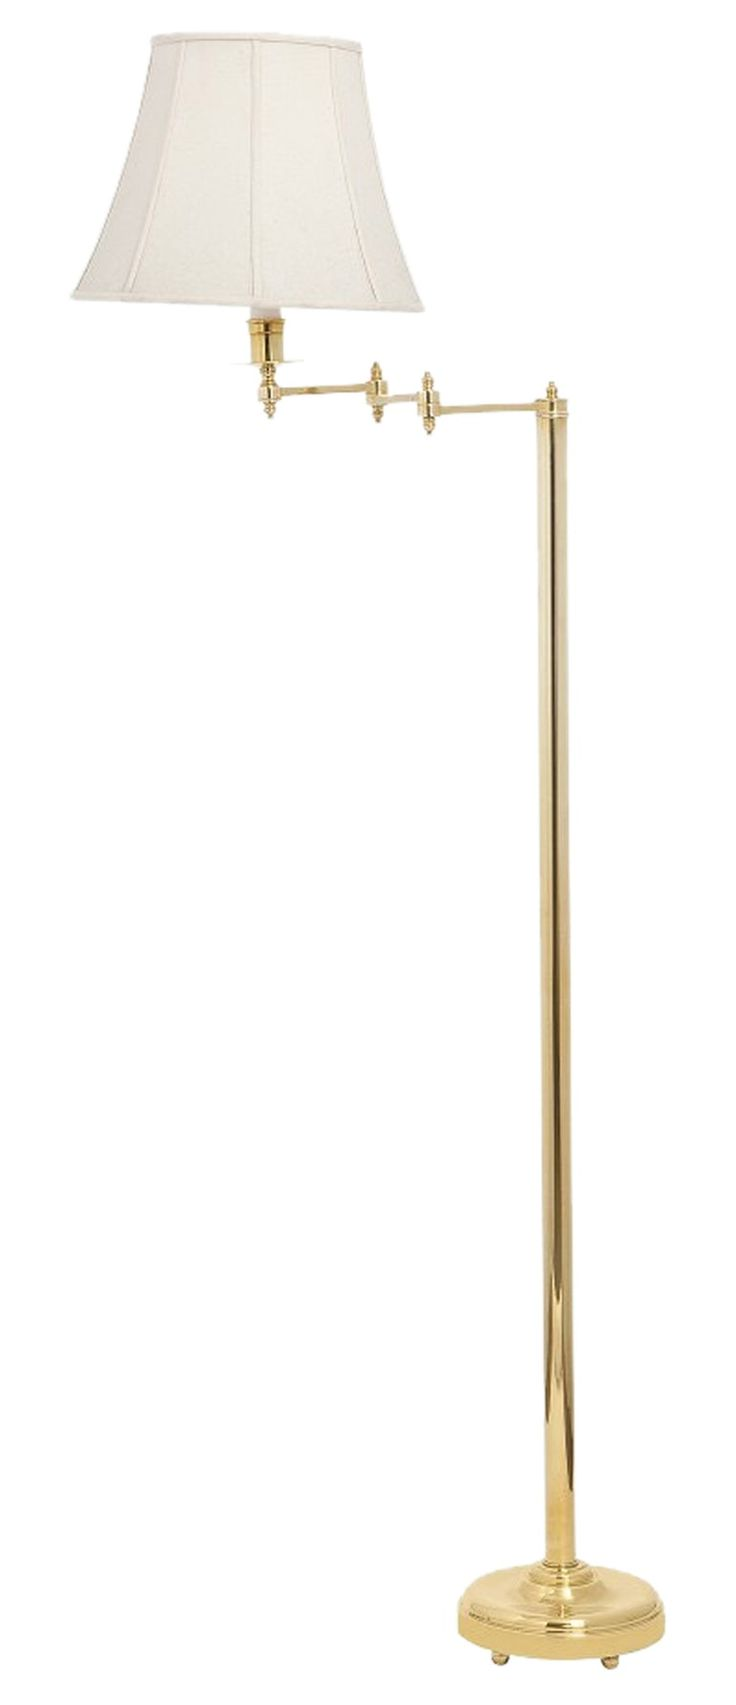 St. James Floor Lamp